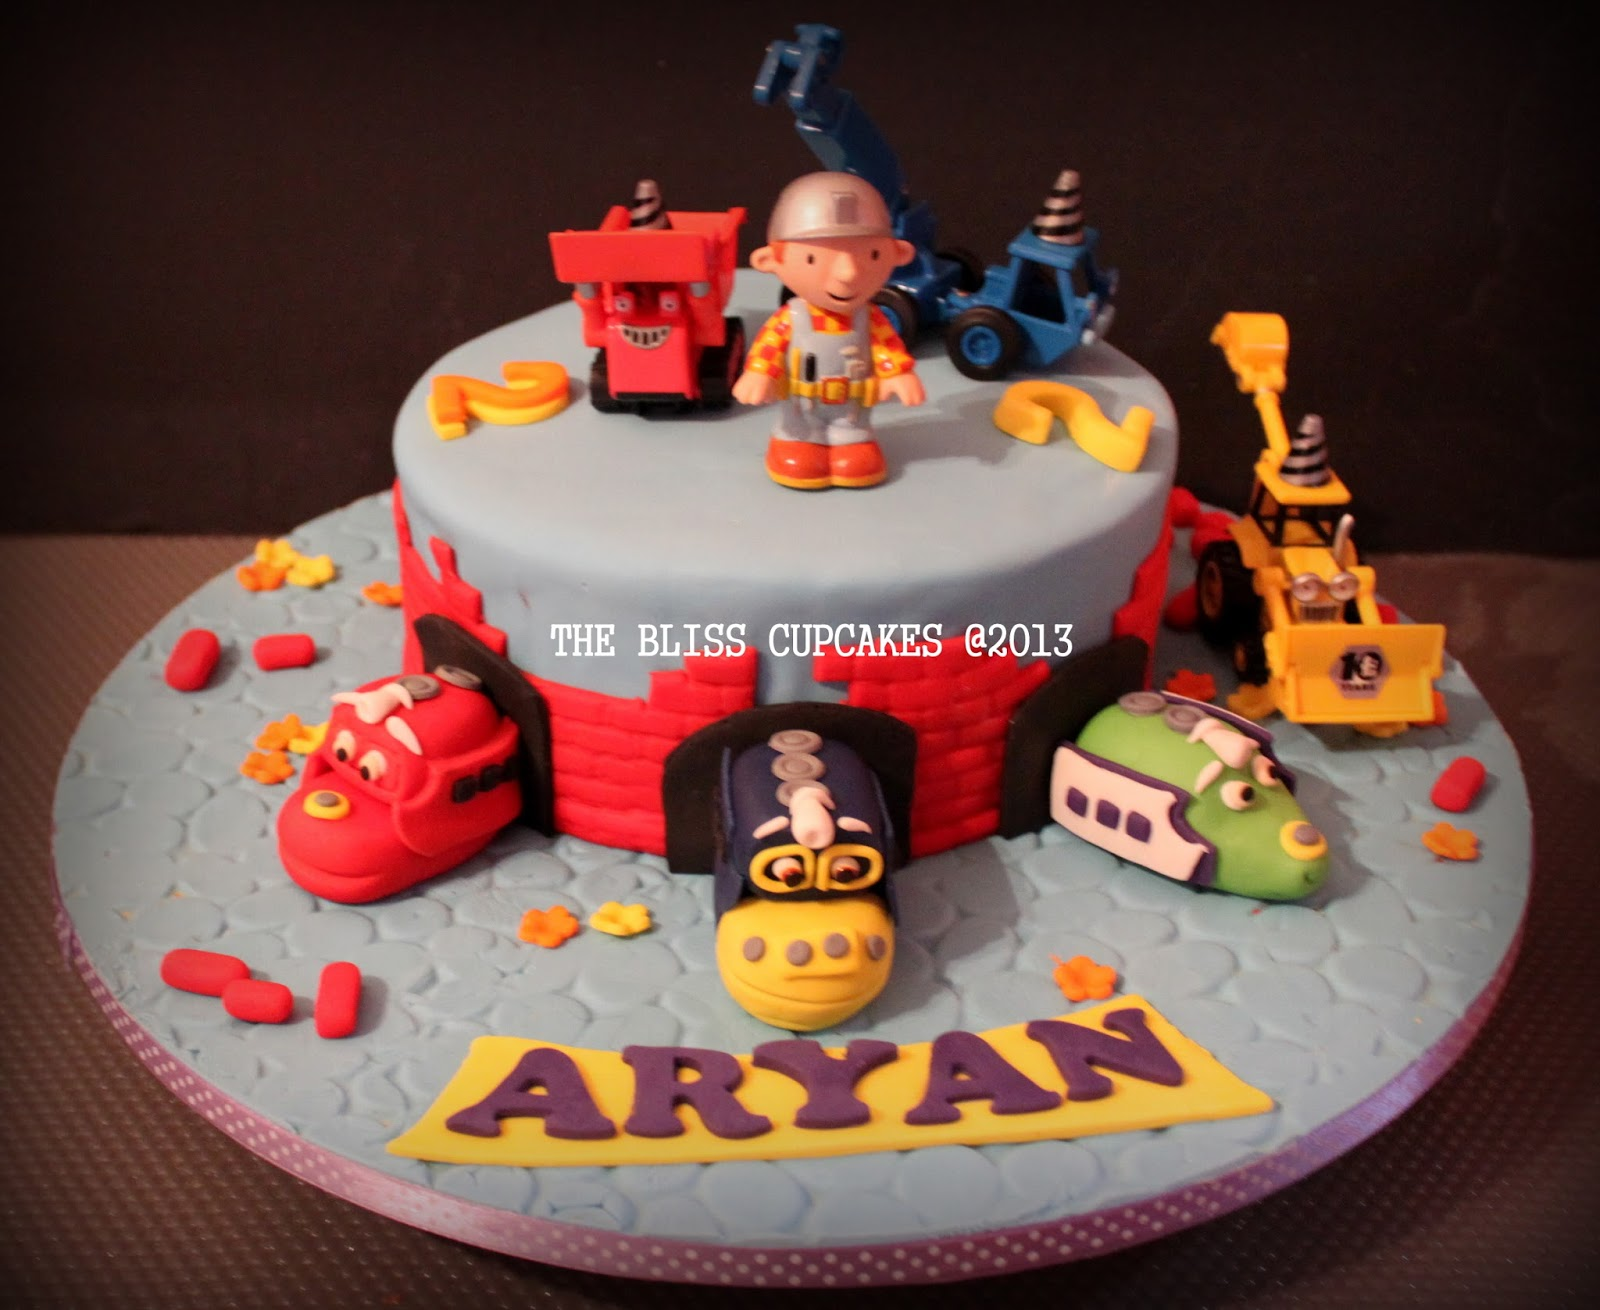 The Bliss Cupcakes Chuggington and Bob The Builder Cake